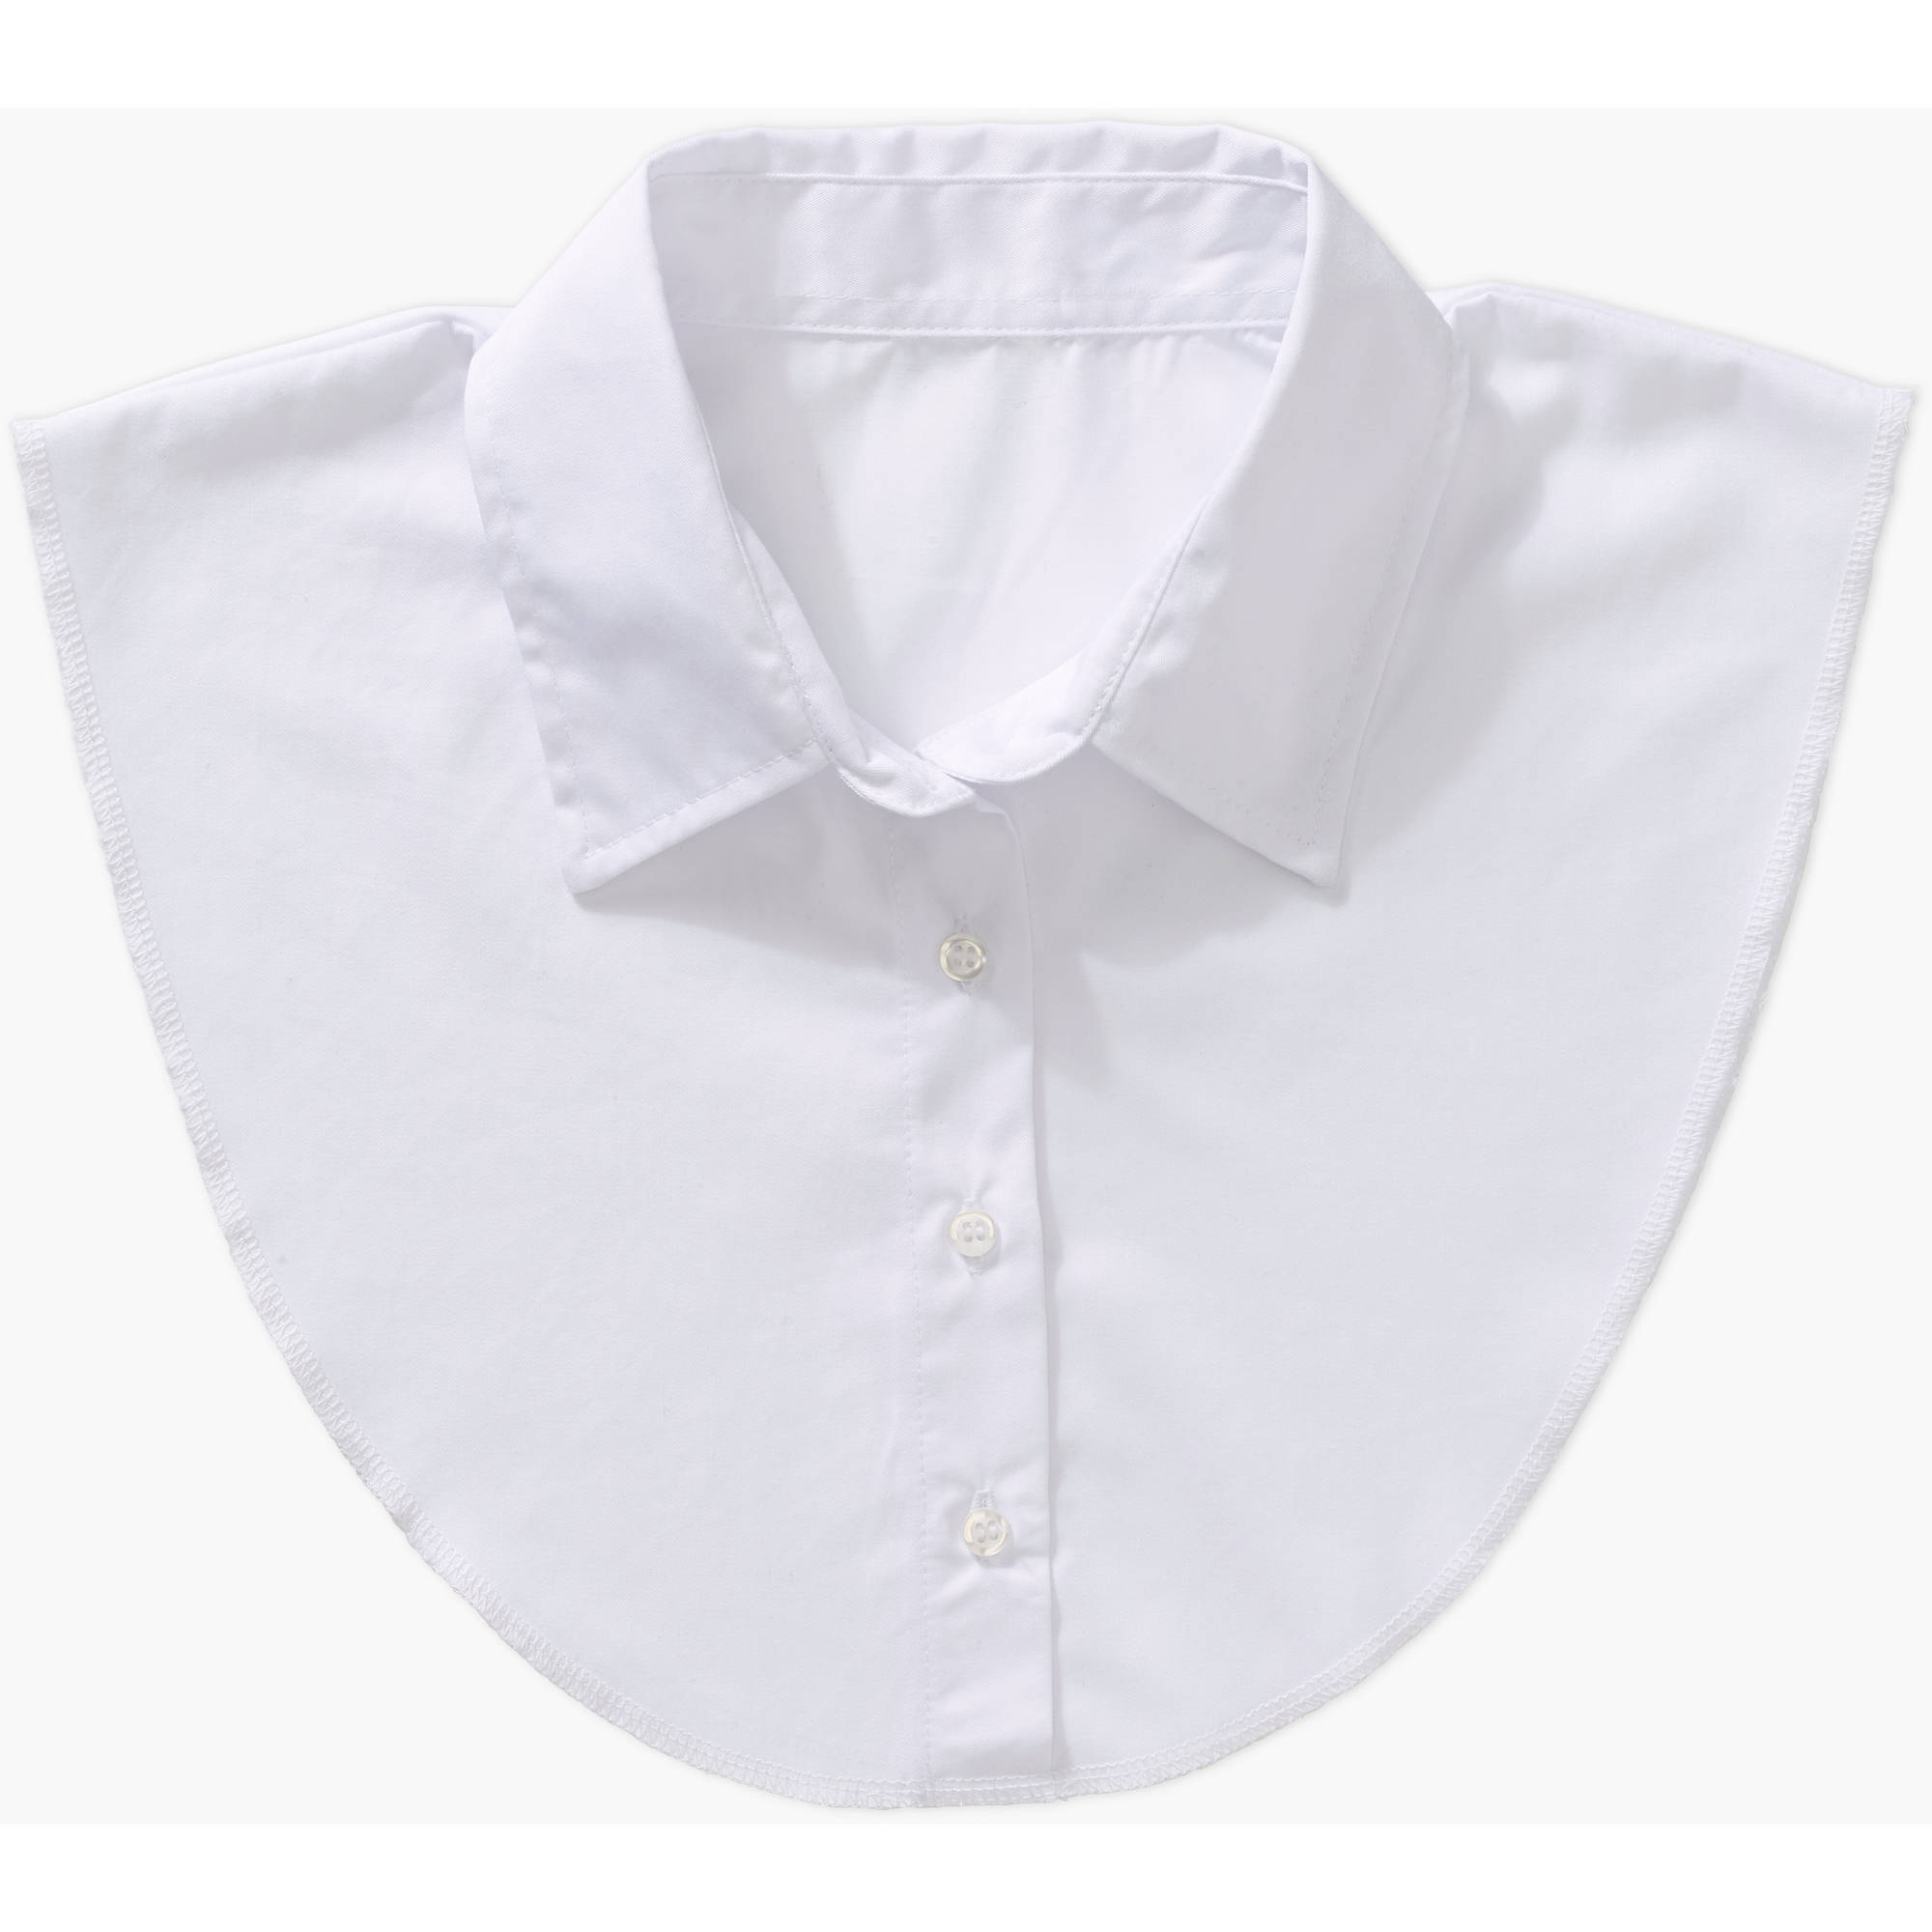 Women's Detachable Dickie Collar in White by IGotCollared